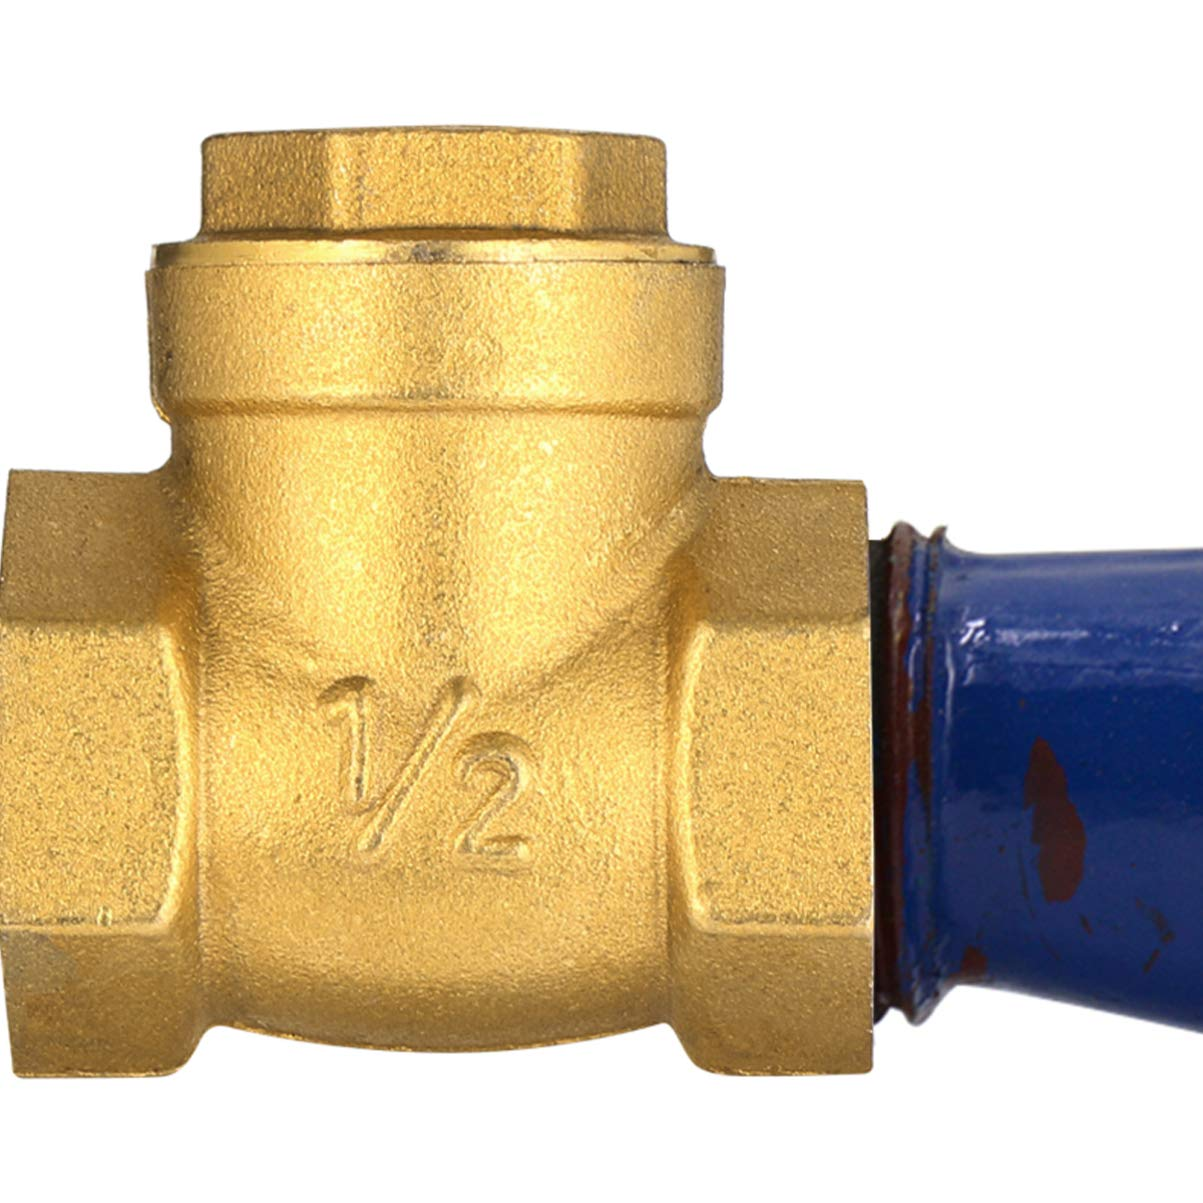 ULTECHNOVO 4pcs Straight Pipe Fitting Quick Connect Brass Water Tube Valve Coupling Adapter